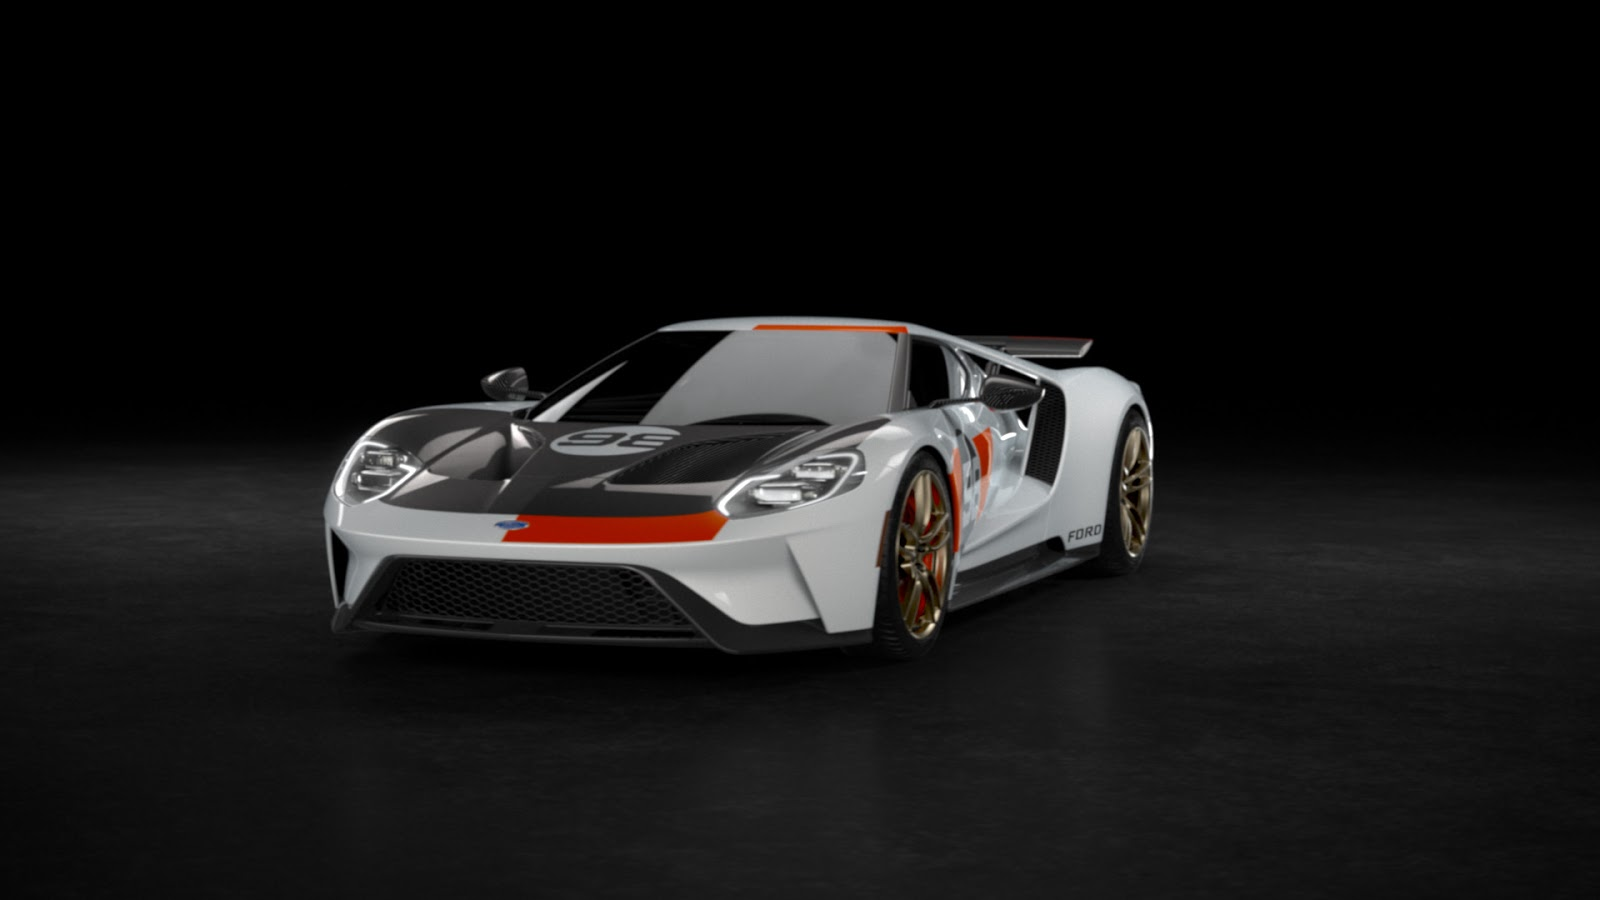 2021 Ford GT Heritage Edition 10 Η πρώτη έκδοση Heritage Edition του Ford GT και η μοναδική έκδοση, Studio Collection